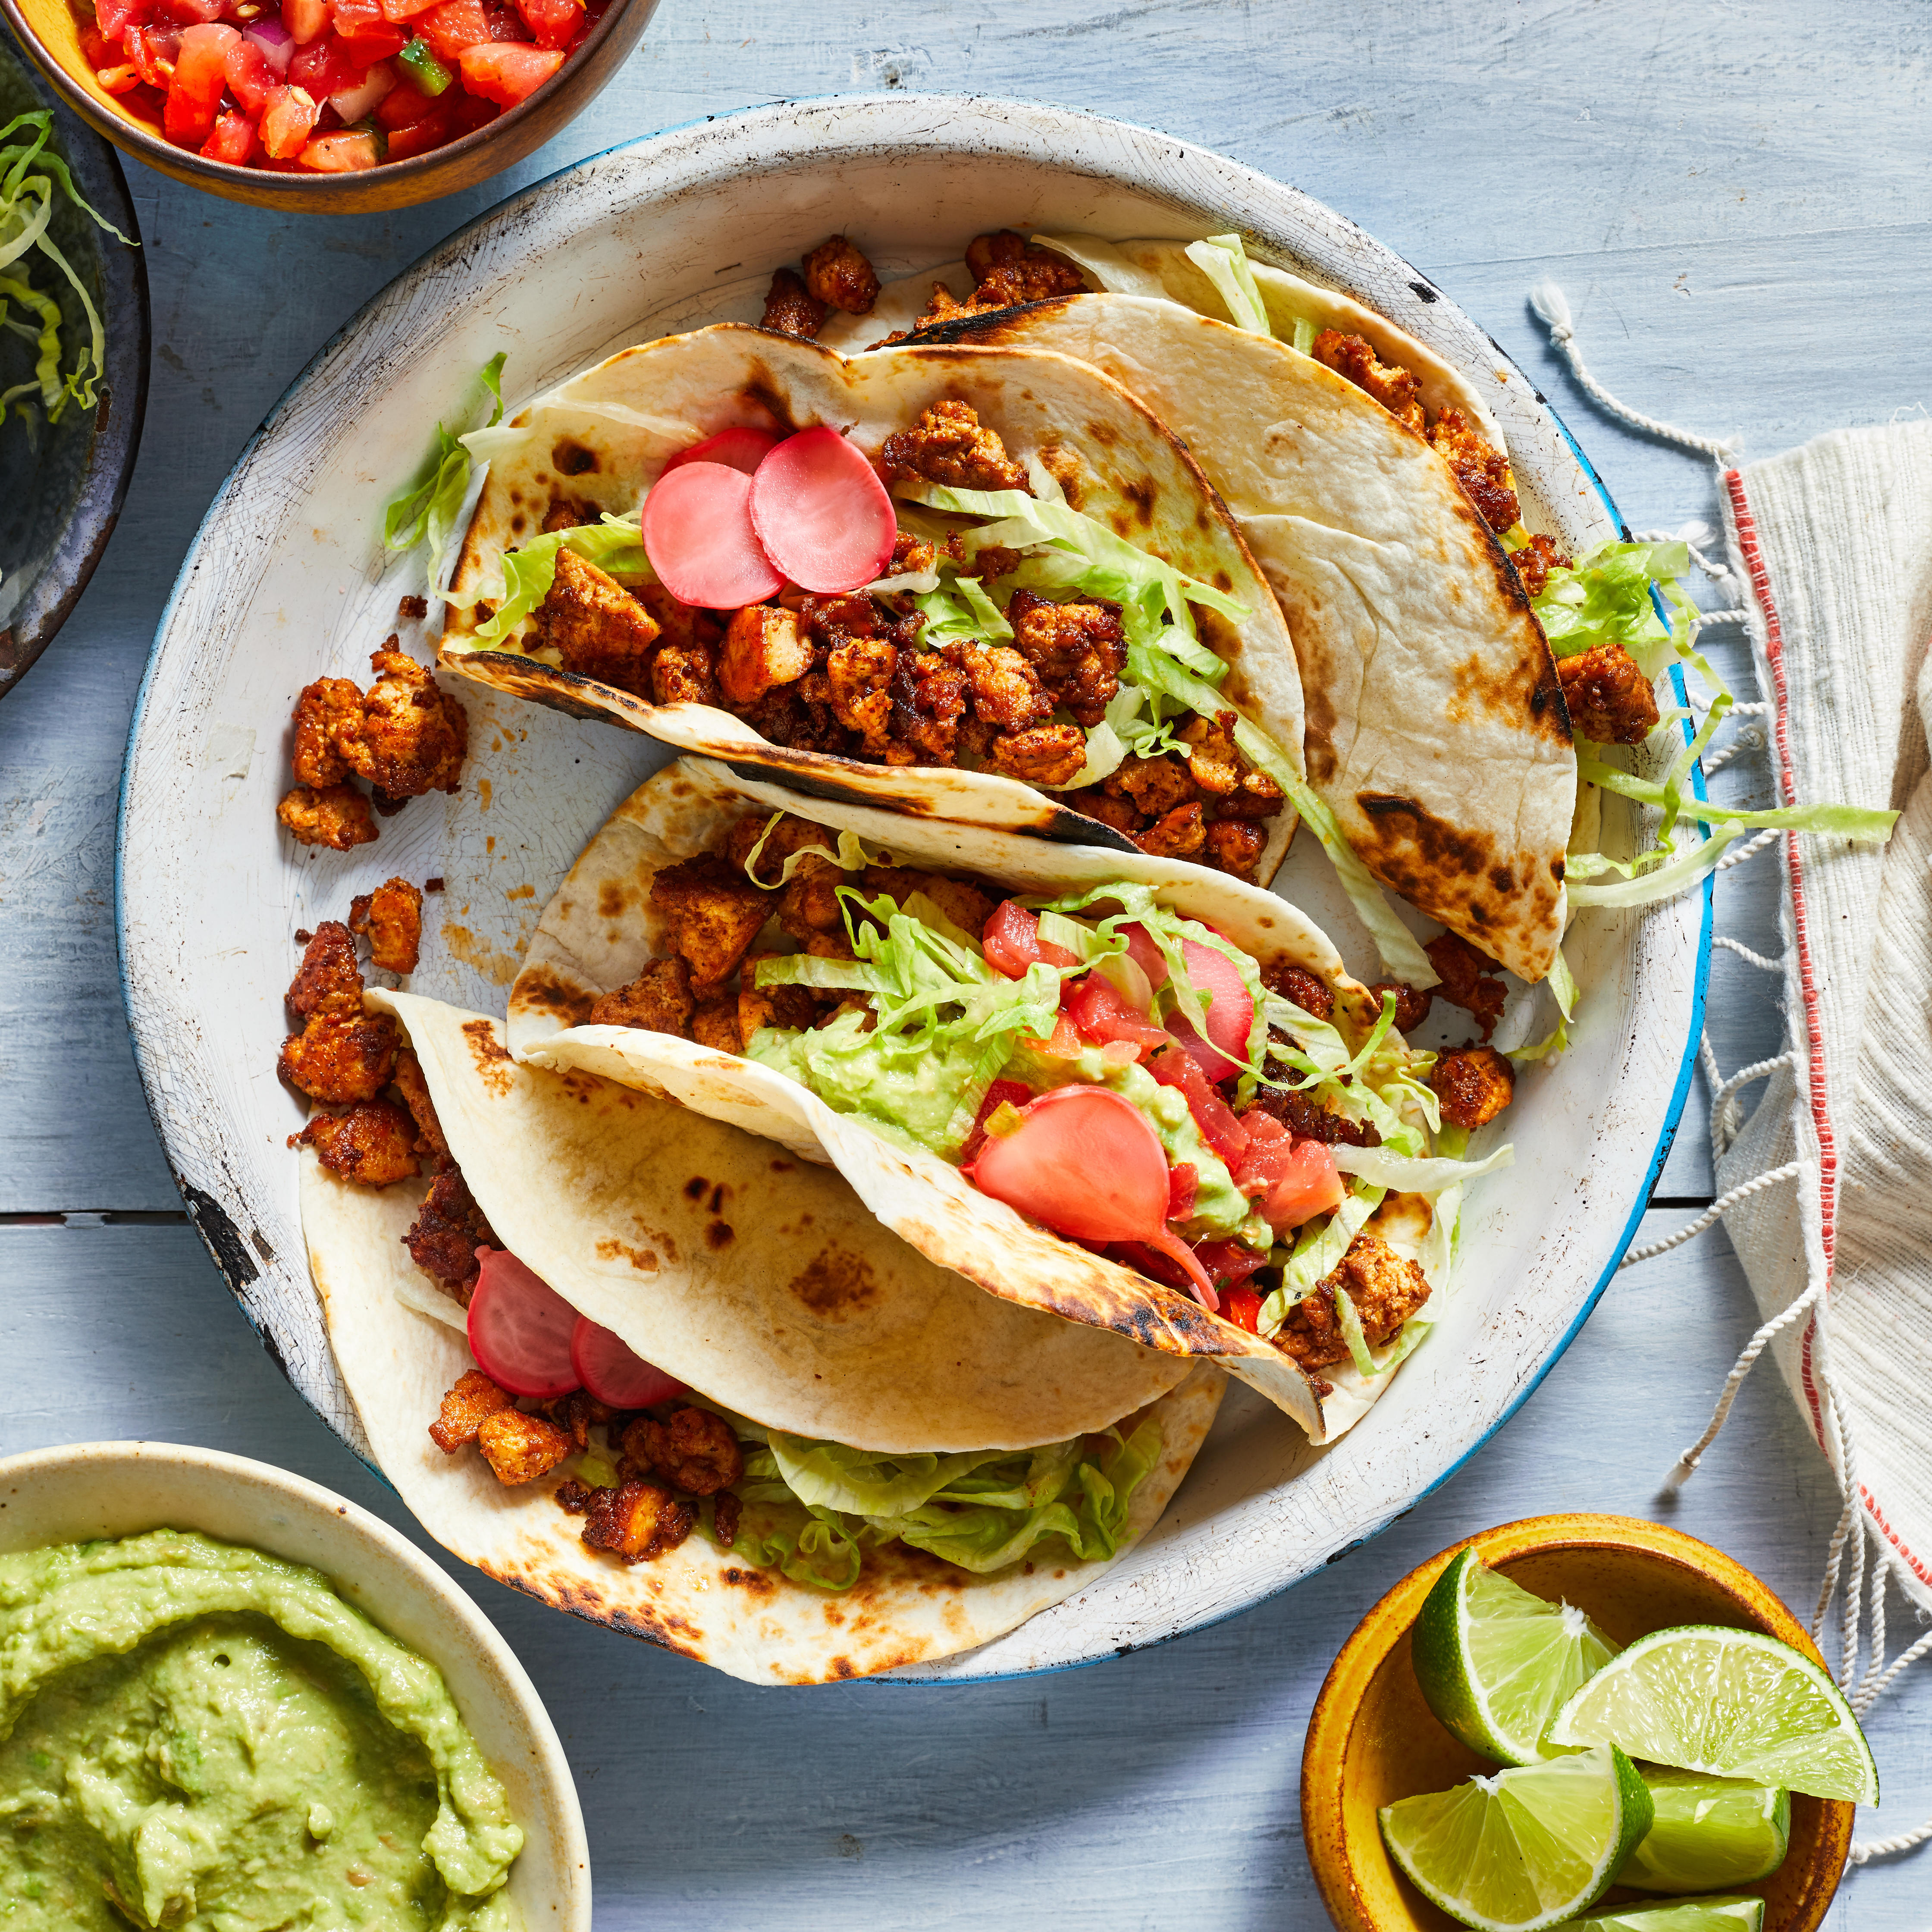 Take taco night in a new direction with these healthy vegan tacos. We've swapped crumbled tofu for the ground beef, without sacrificing any of the savory seasonings you expect in a taco. You can also use the filling in burritos, bowls, taco salads and to top nachos. Source: EatingWell.com, March 2019